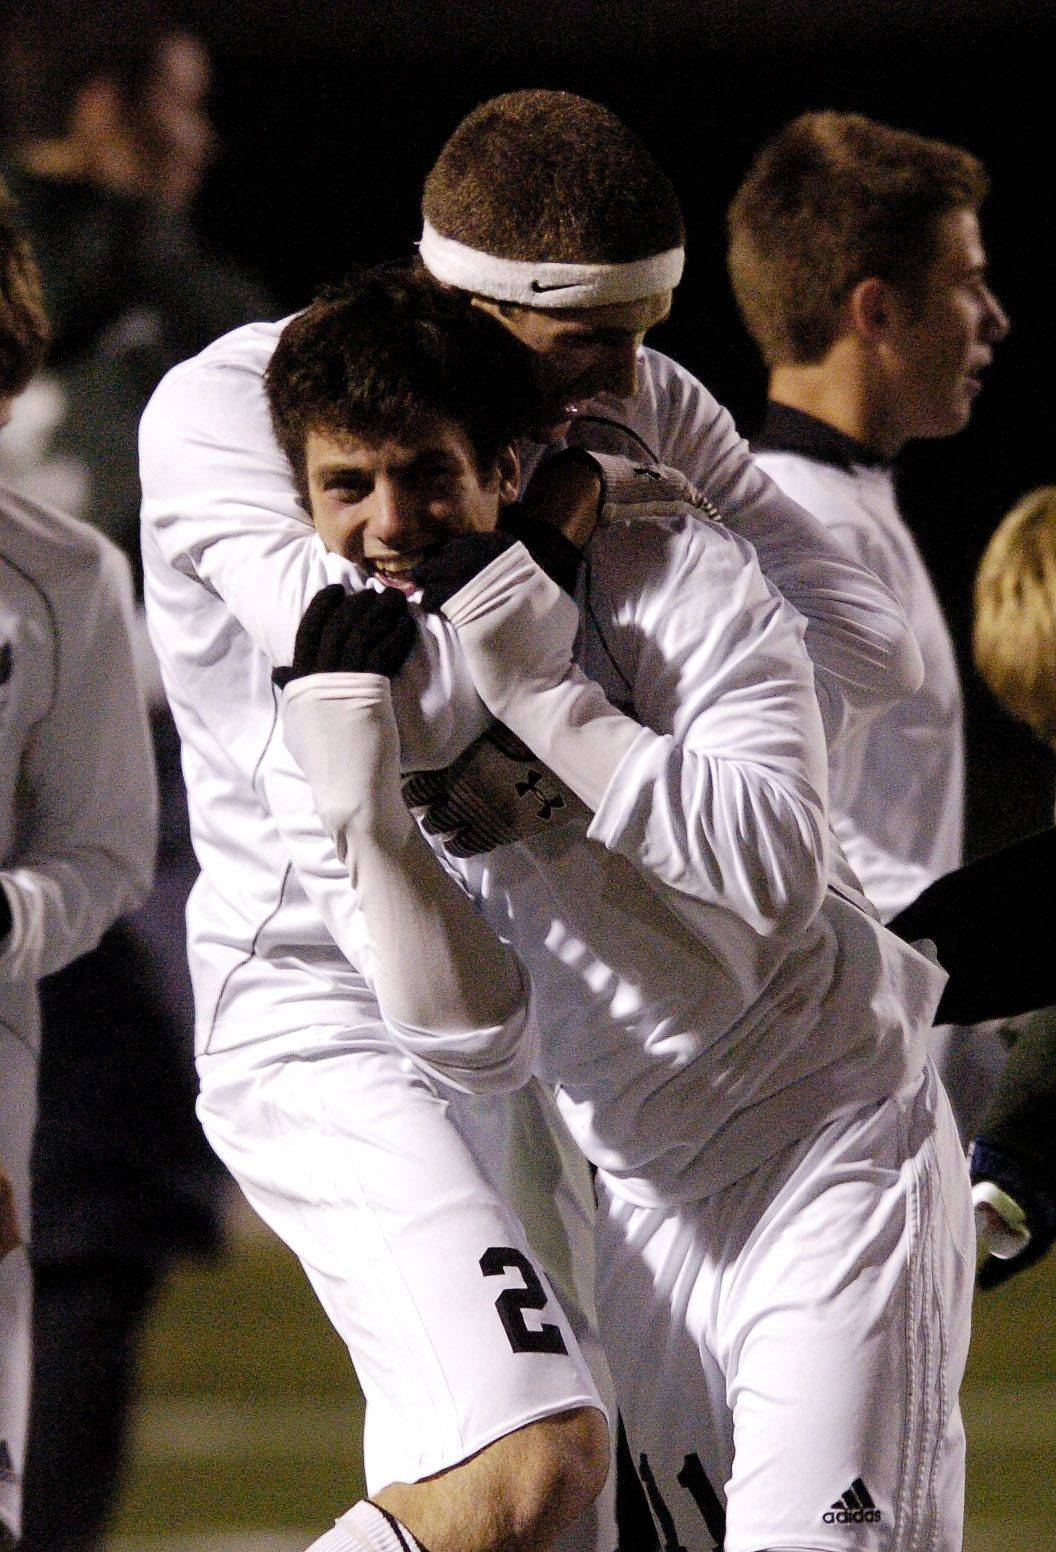 Charlie Sordini, 11, of Bartlett gets a hug from a teammate after scoring the winning goal during single overtime gameagainst Elk Grove in the boys soccer semifinals at Schaumburg.